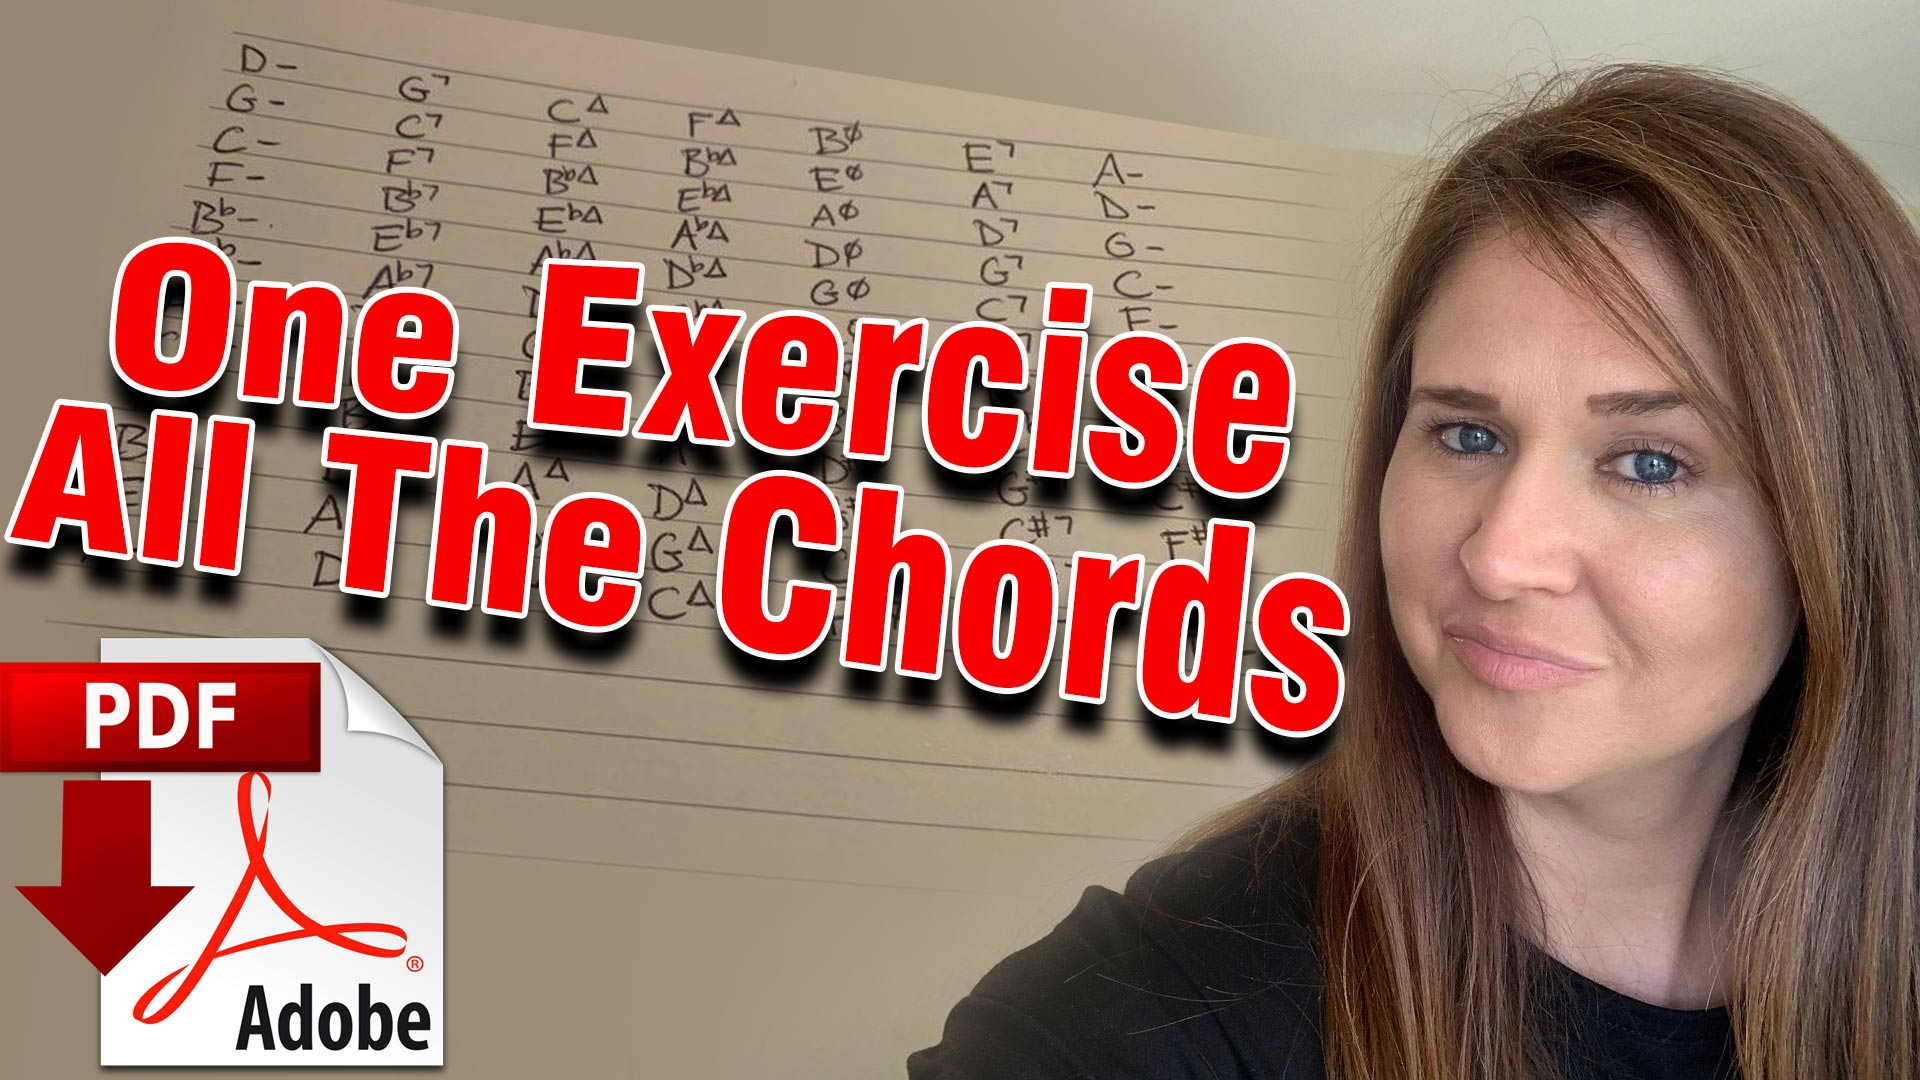 One Exercise - All The Chords